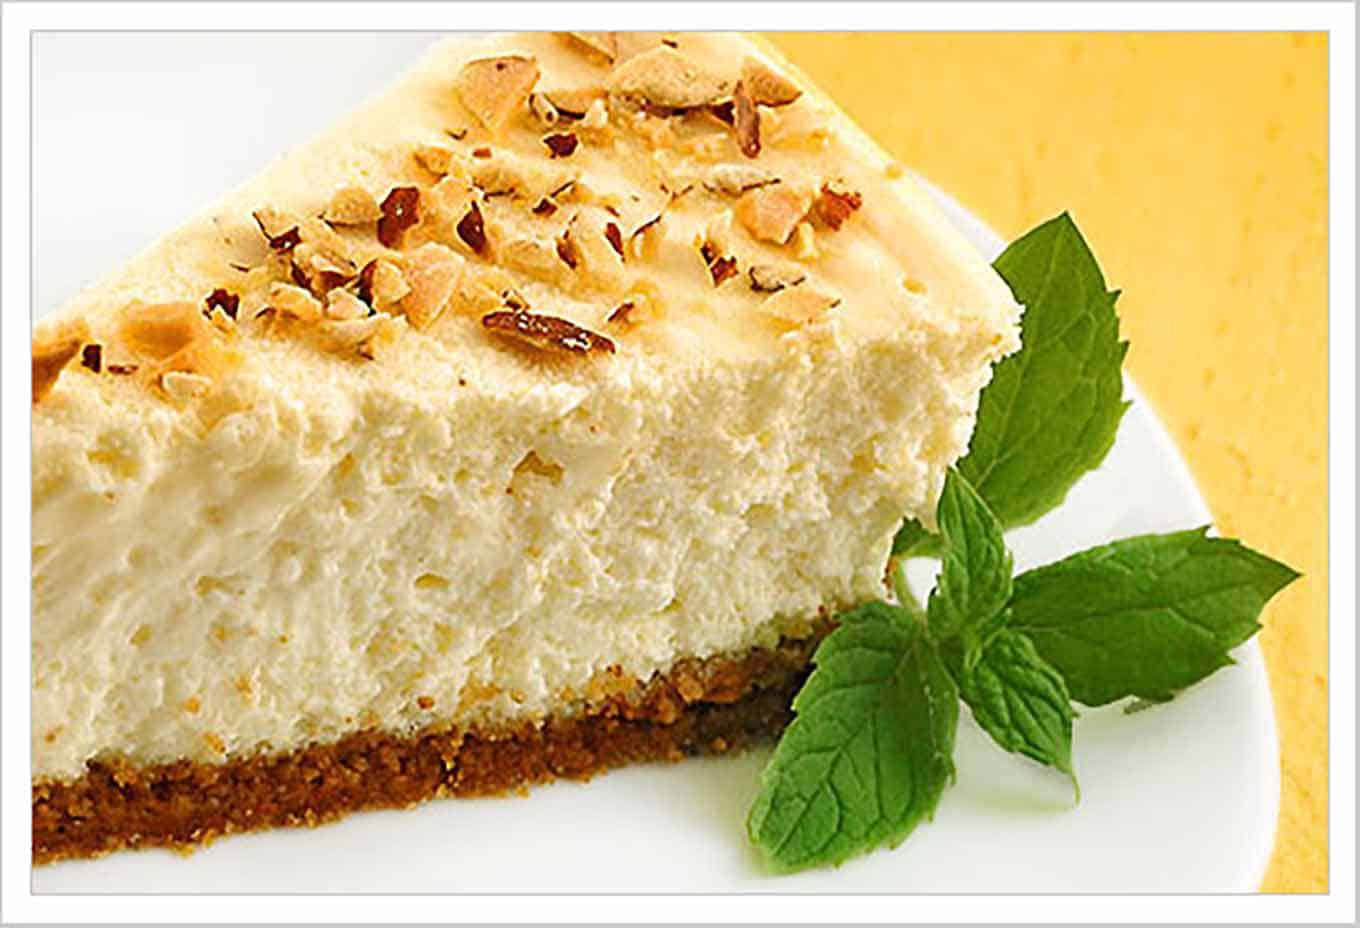 Creamy Cheesecake Recipe  Creamy Amaretto Cheesecake Recipe